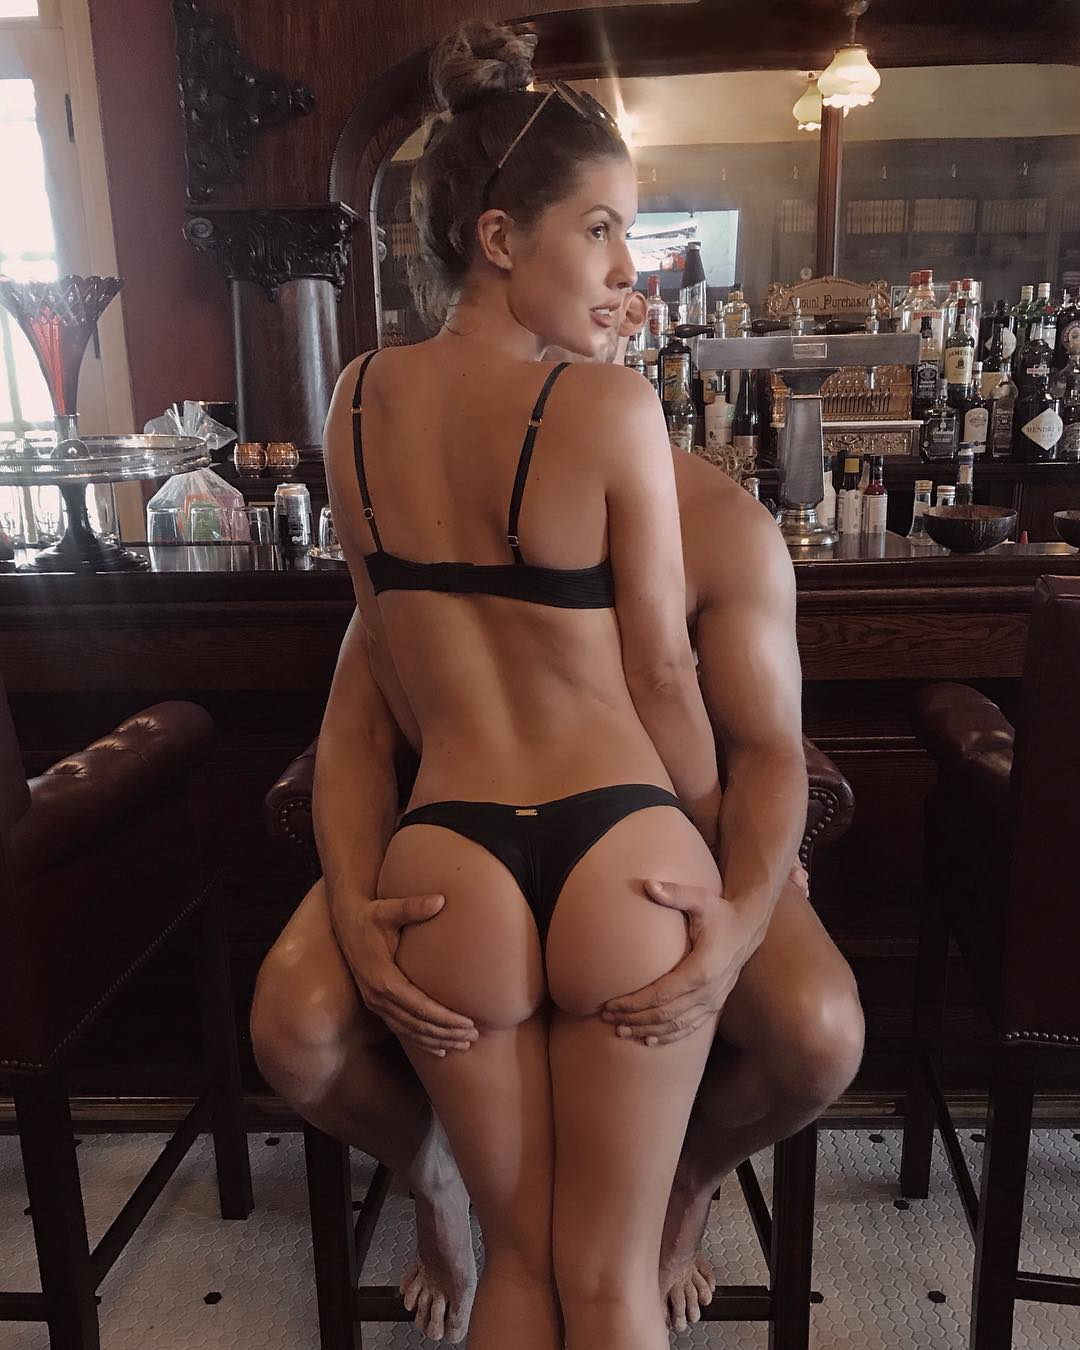 Hot photos of Playboy model and actress Amanda Cerny will take your breath away 24